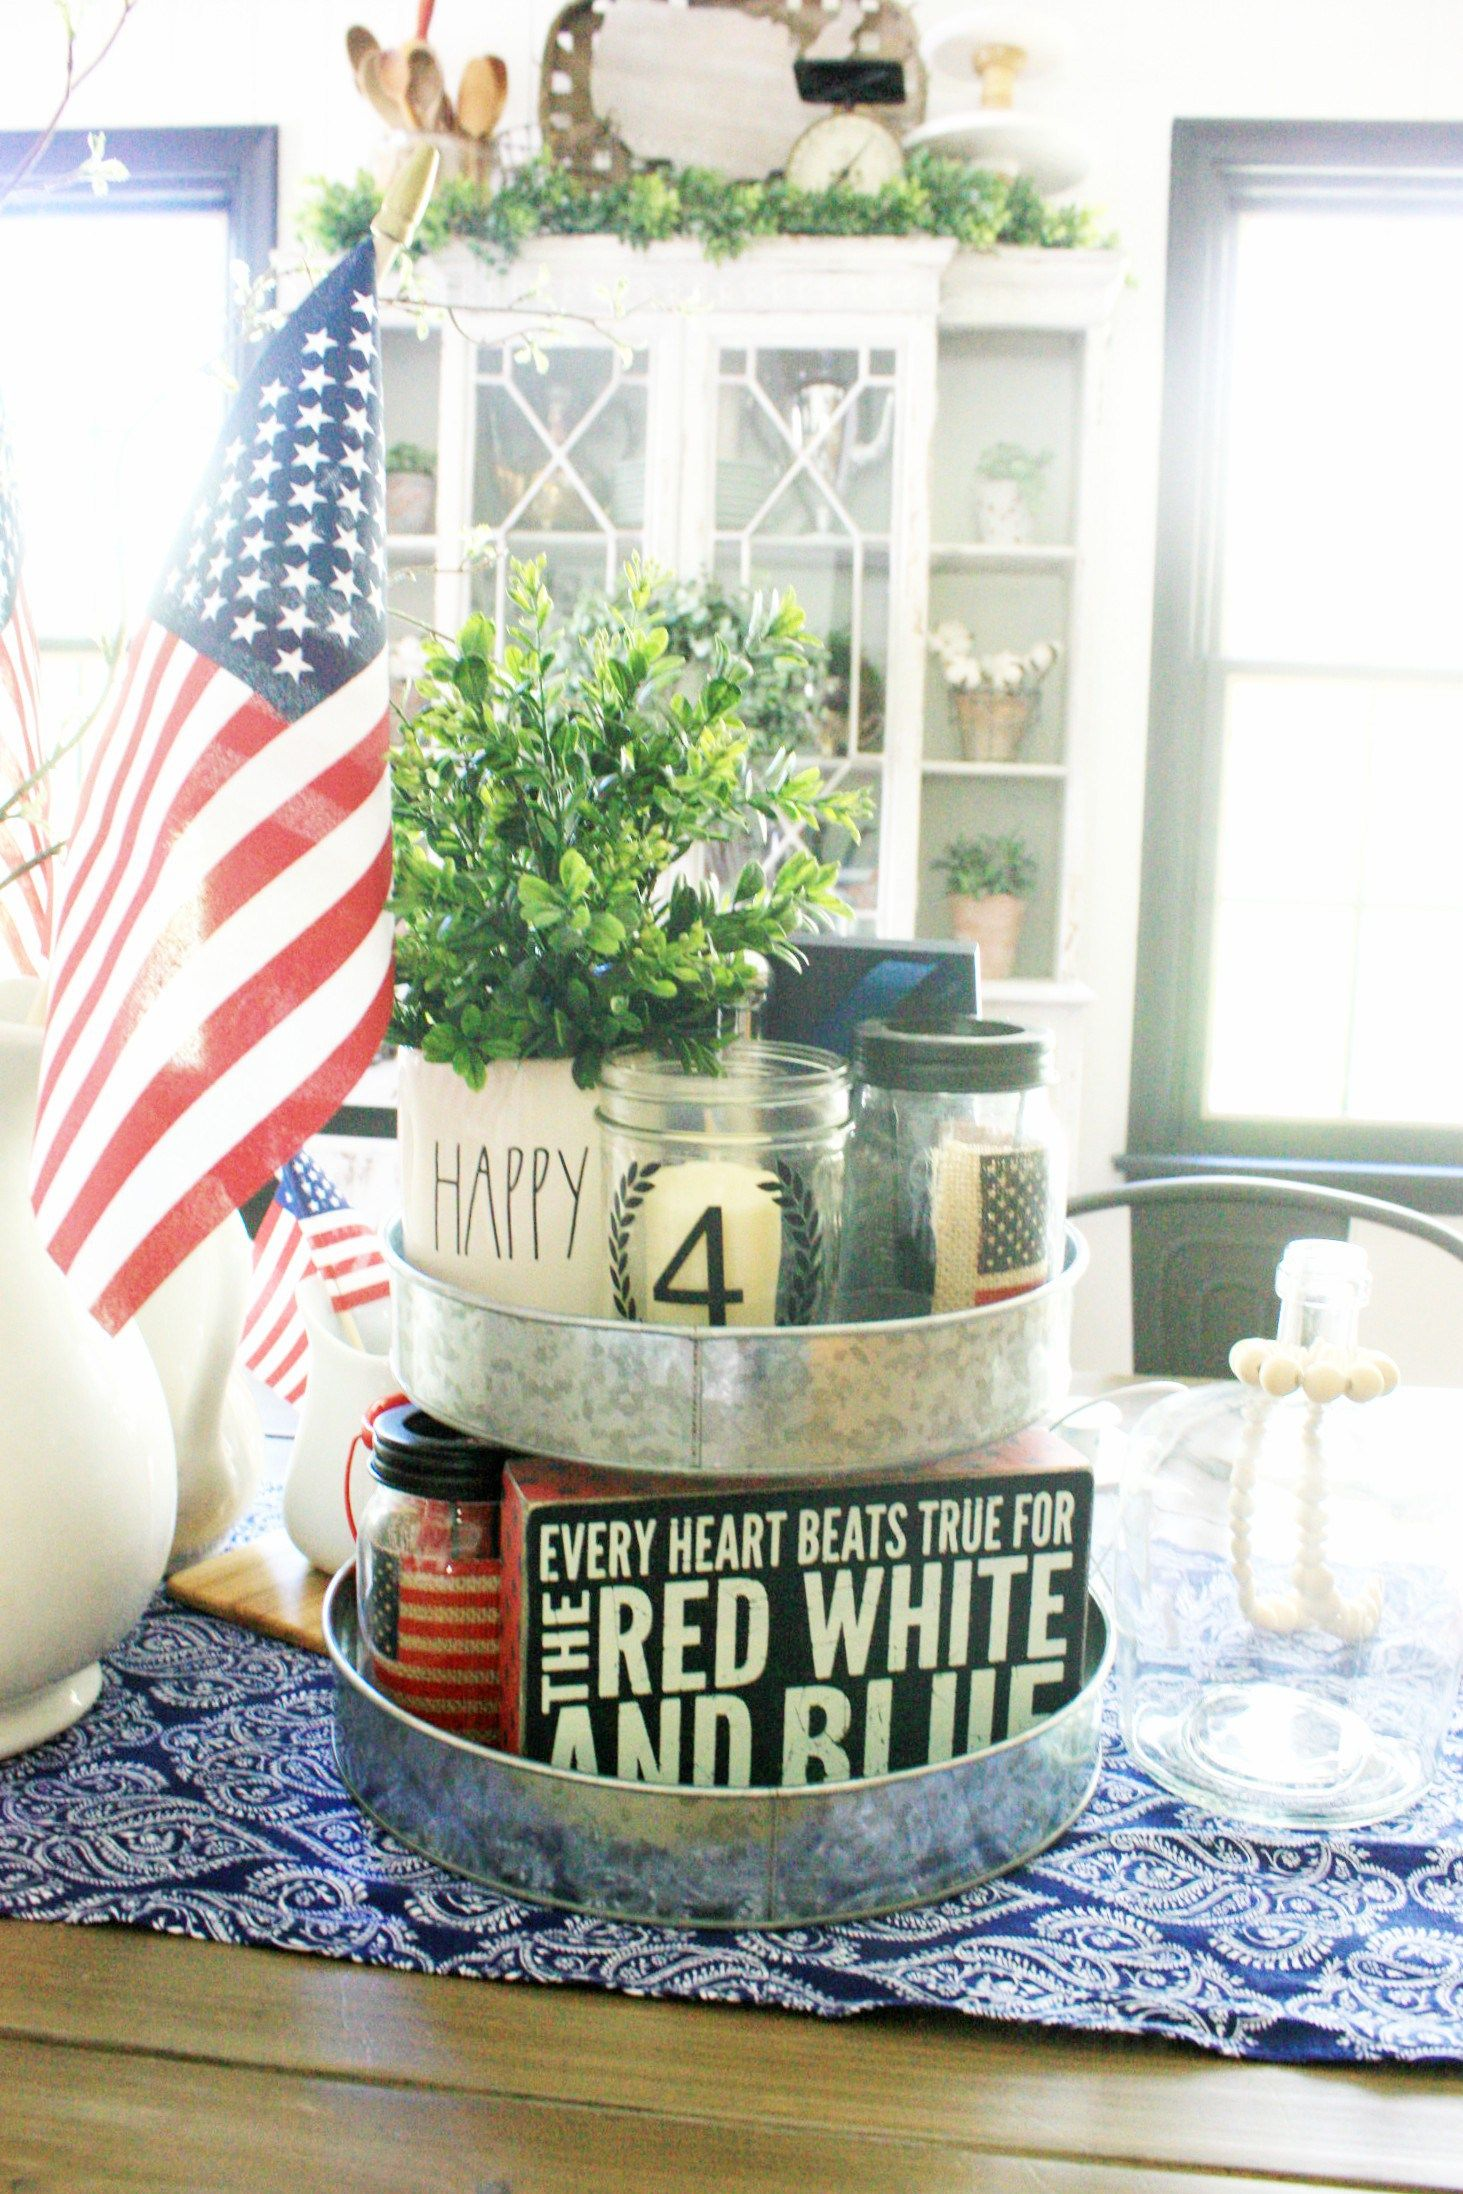 Decorating A Tiered Tray For The 4Th Of July, Add